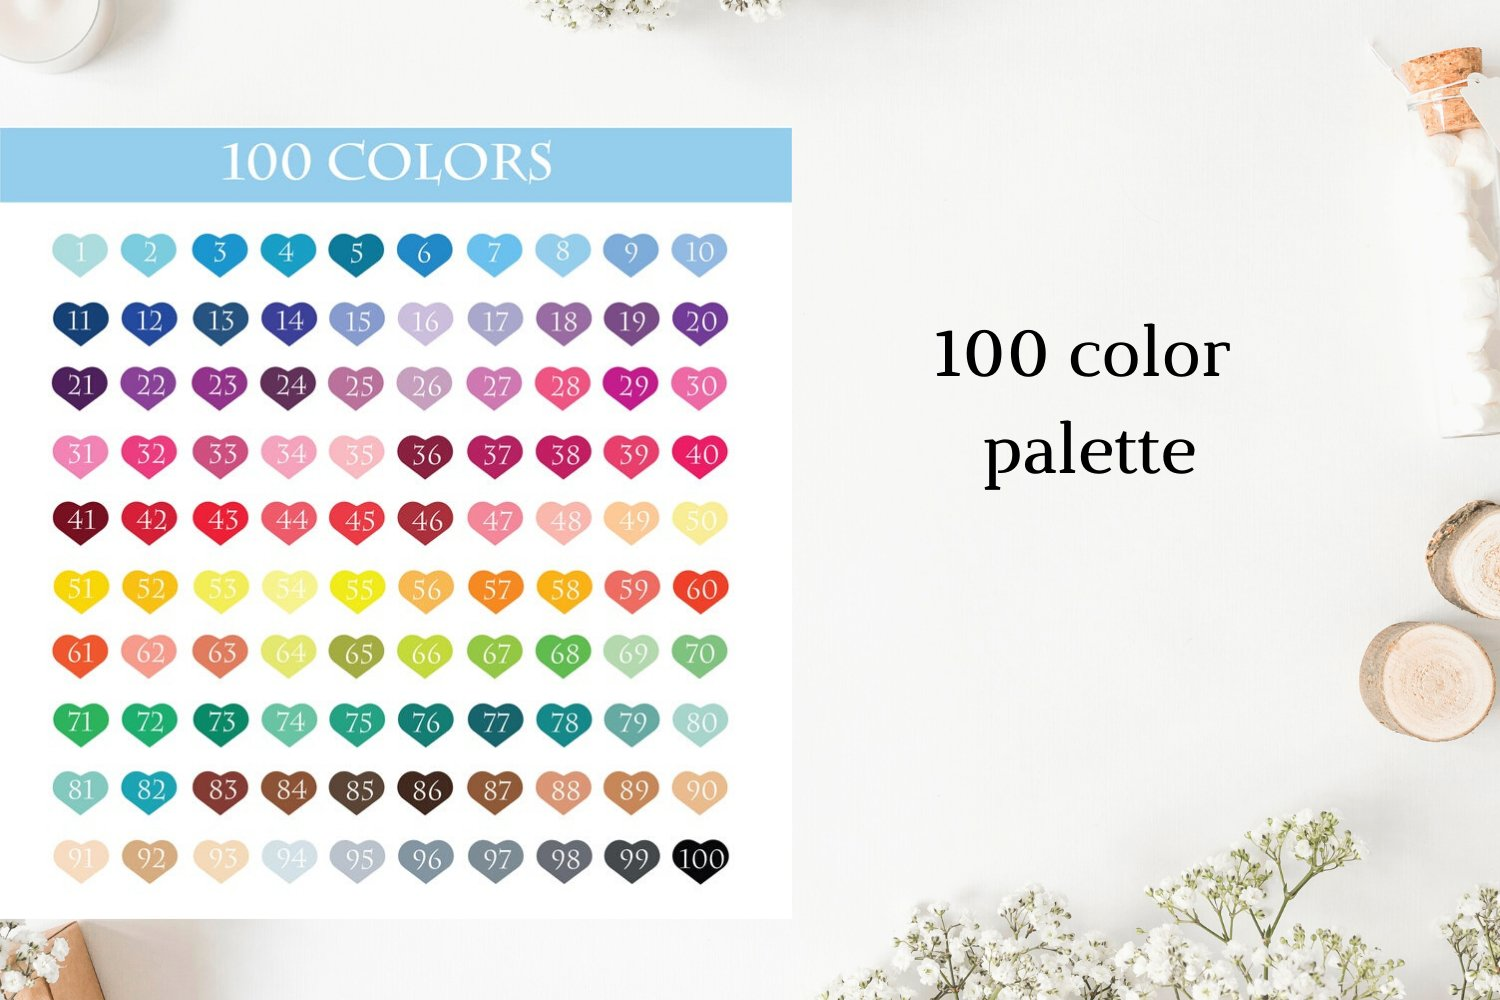 100 Appointment font clipart, Appointment sticker clipart example image 3